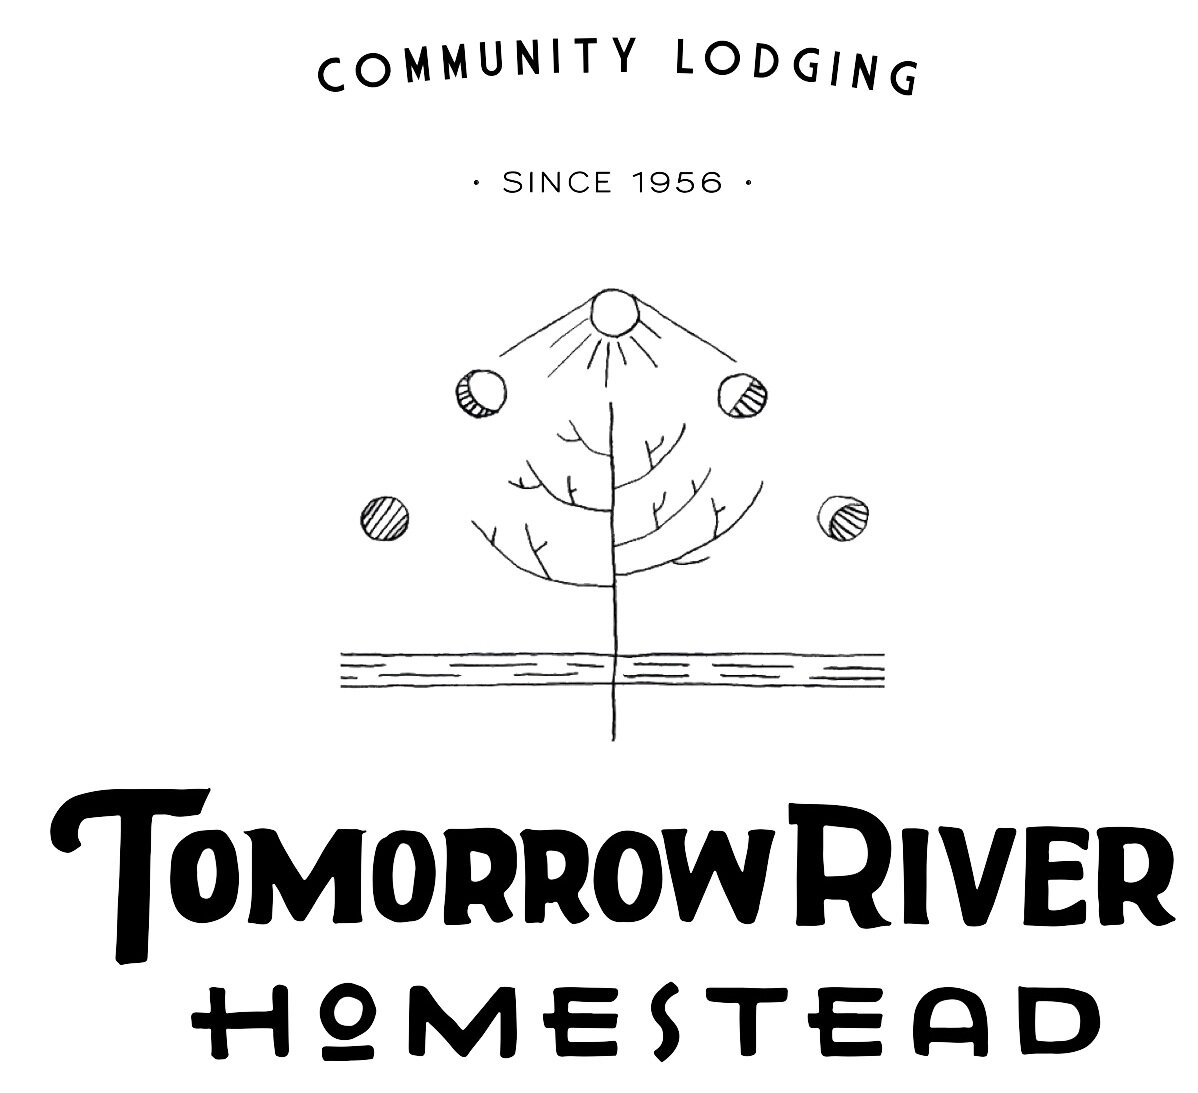 Tomorrow River Homestead